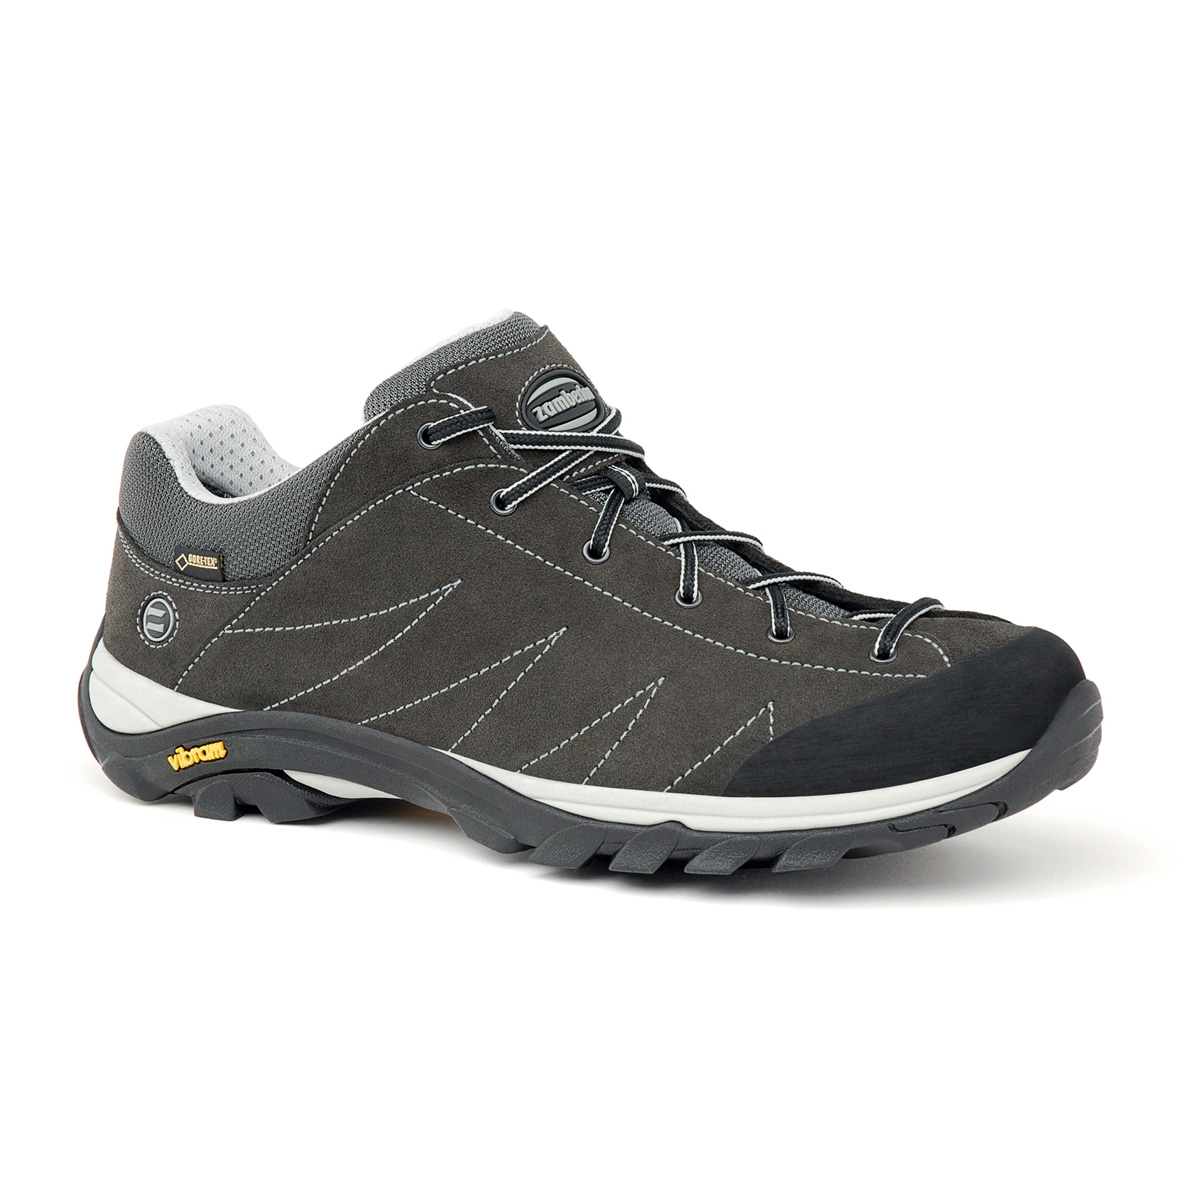 Zamberlan 104 Hike Lite Gore-Tex Mens Graphite Shoe